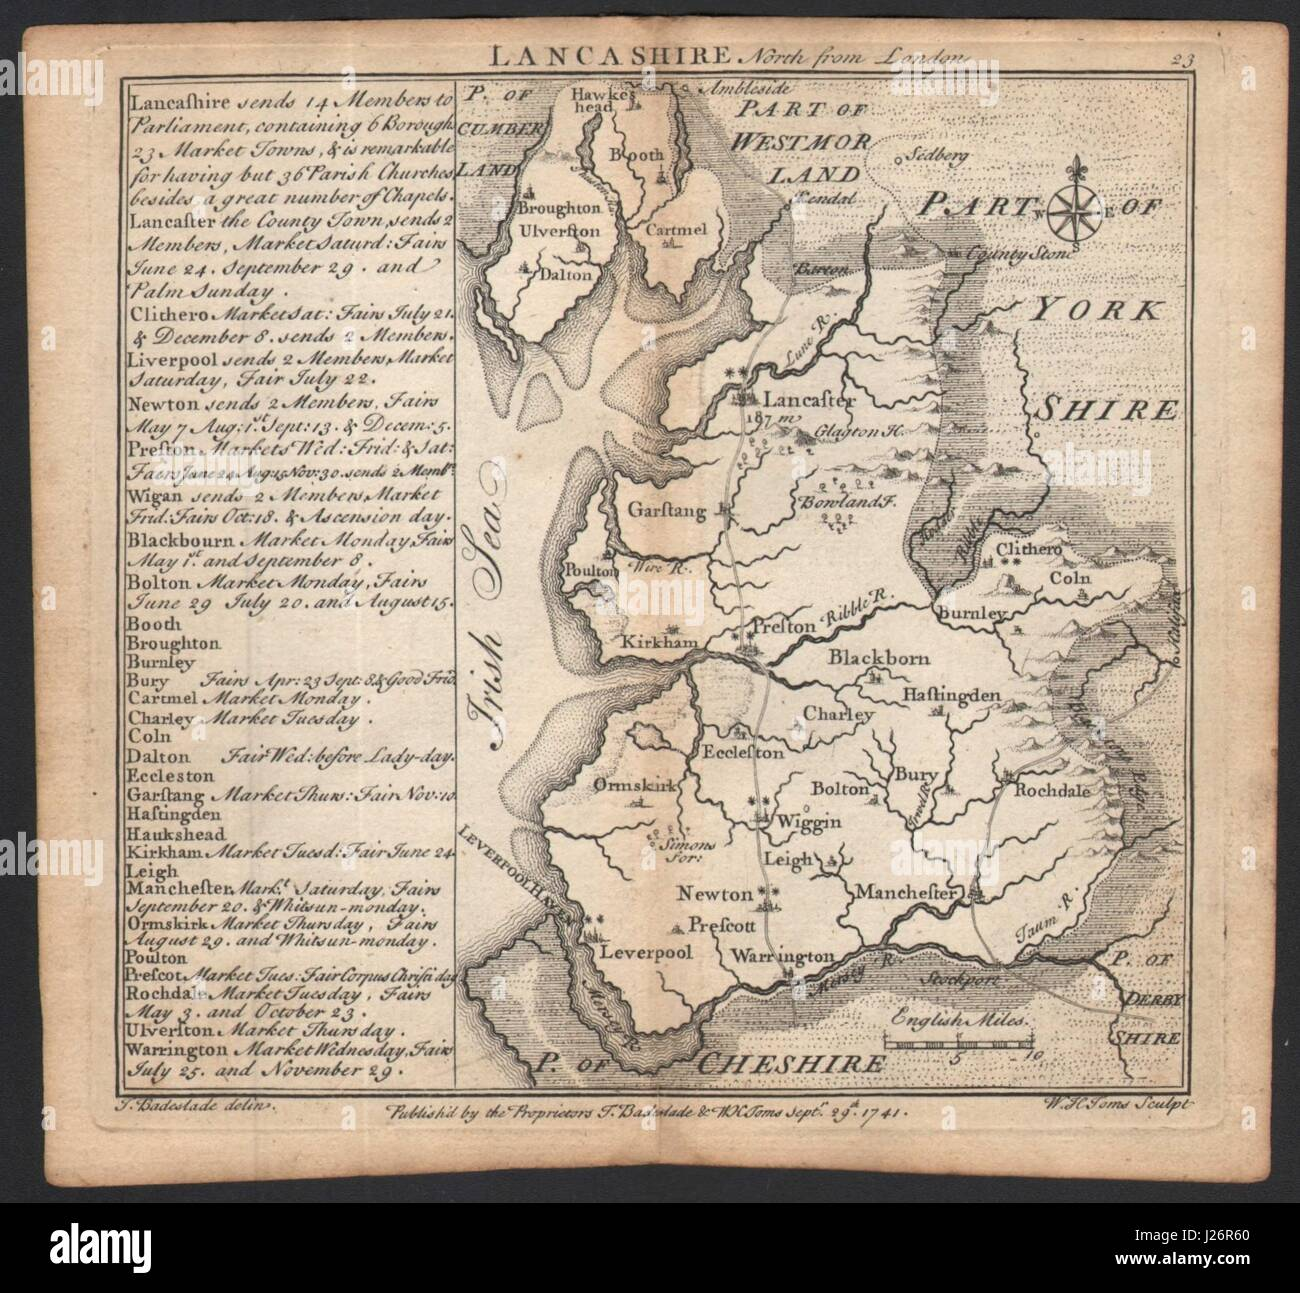 Antique county map of Lancashire by Badeslade & Toms 1742 old - Stock Image